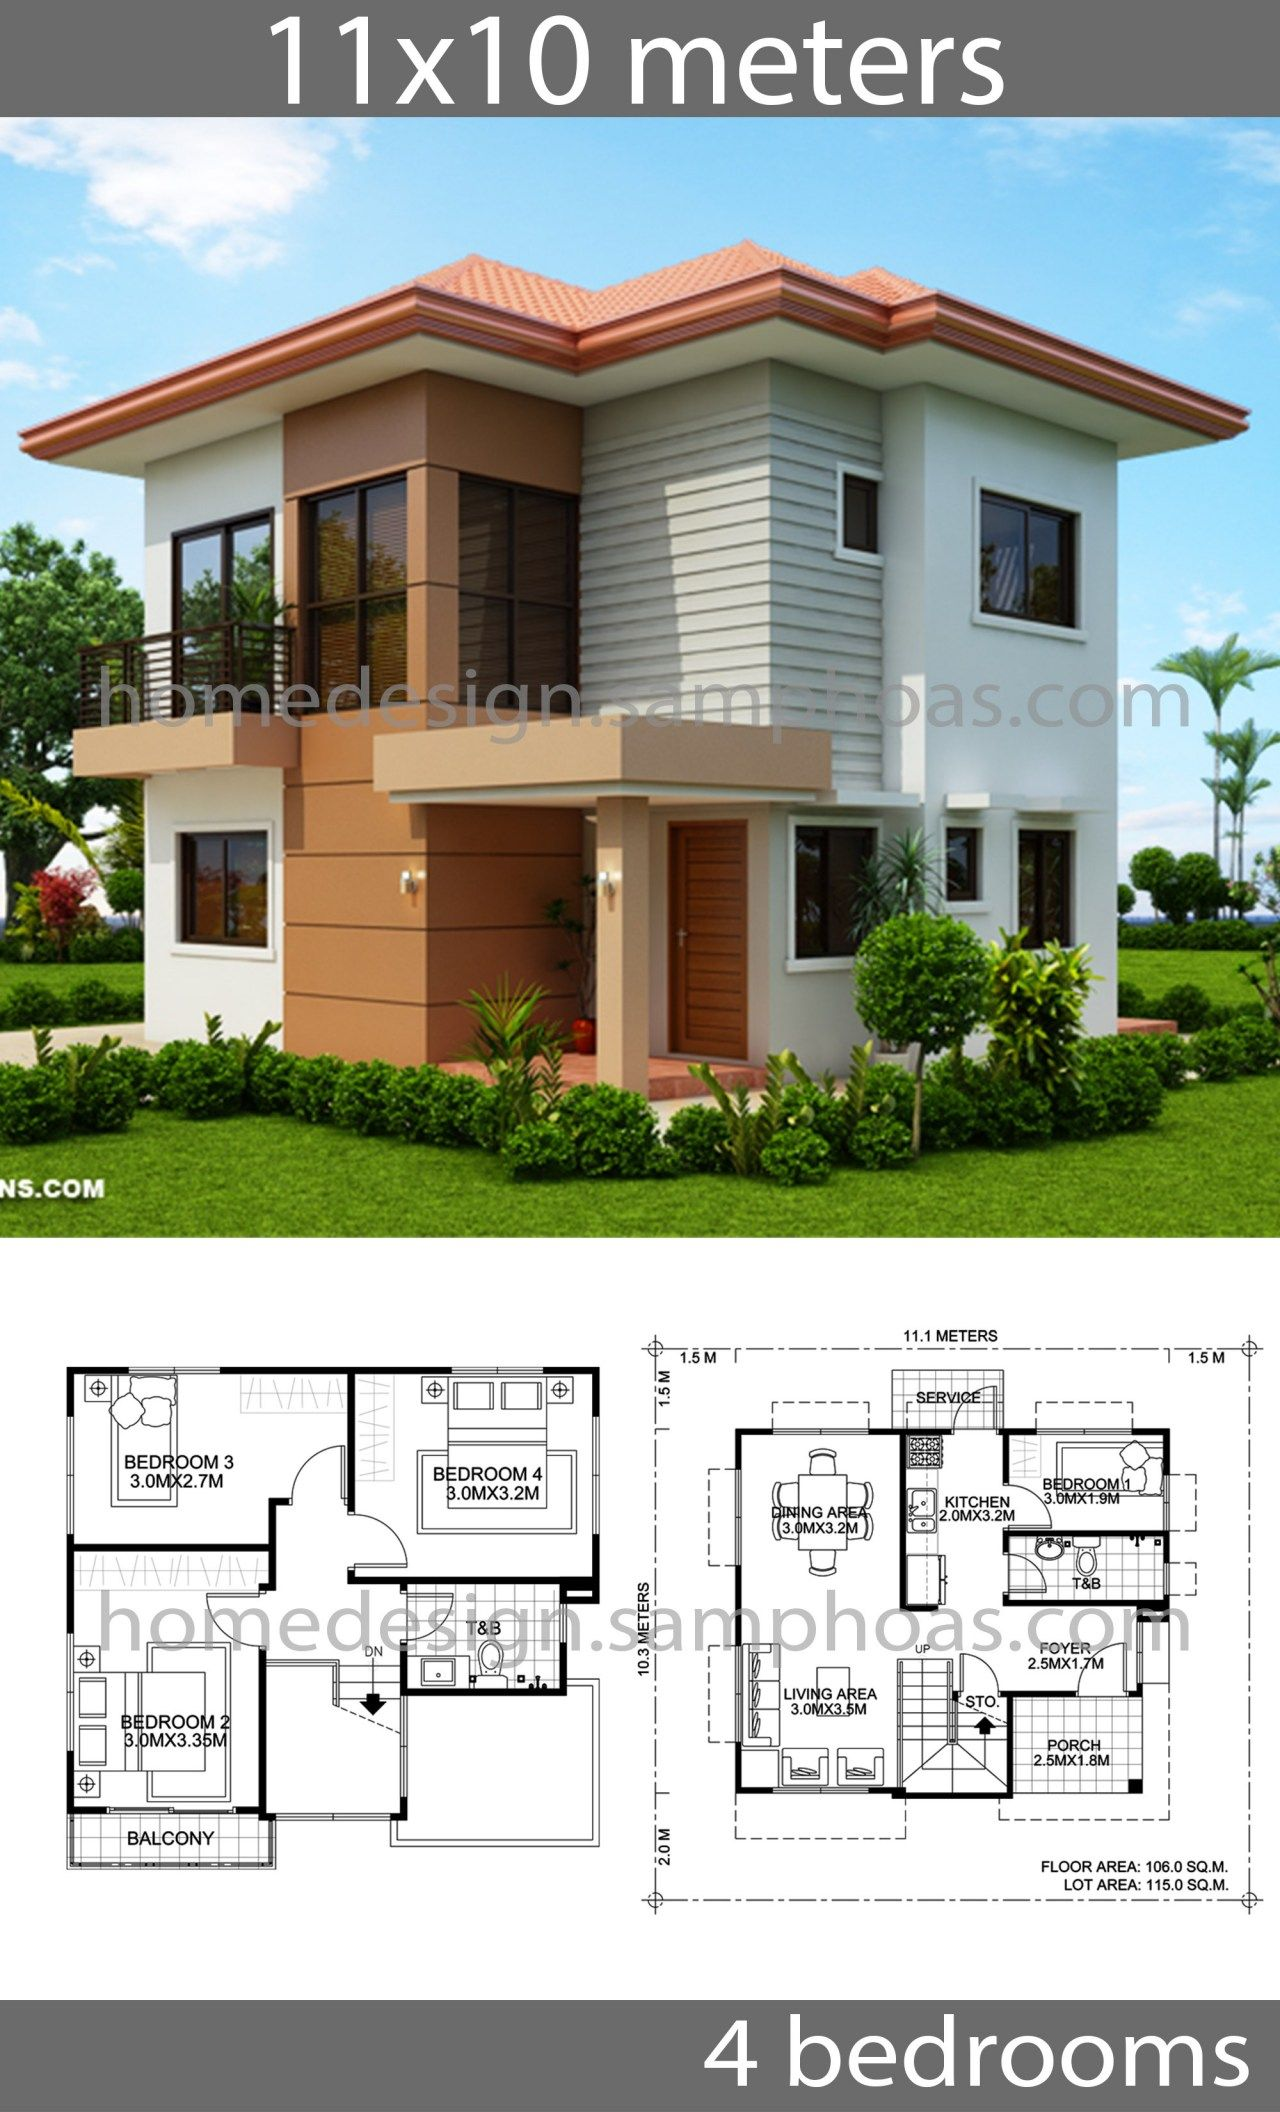 House Design Plans 10x11m With 4 Bedrooms Home Ideas Affordable House Plans Modern Style House Plans Beautiful House Plans